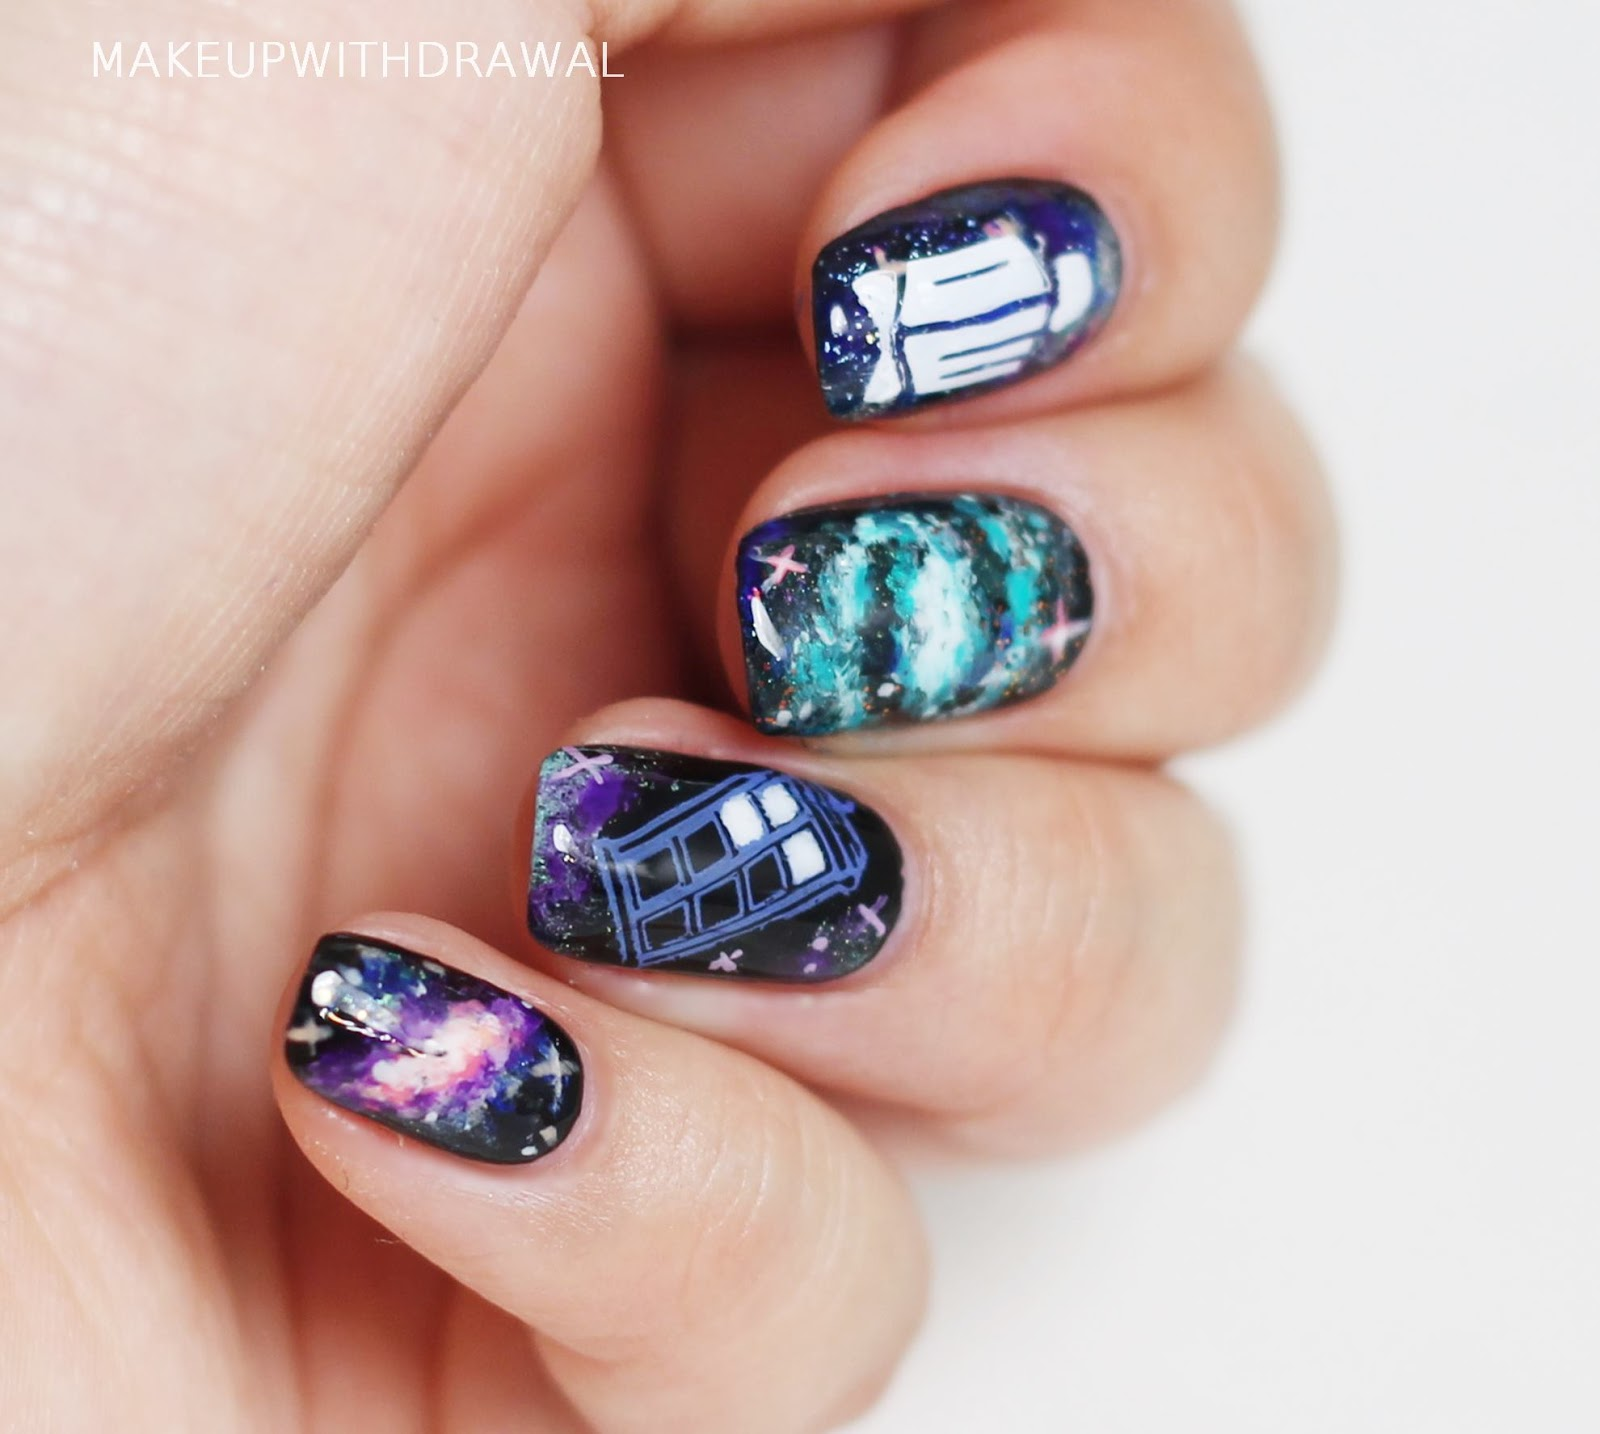 Tardis in space nails makeup withdrawal tardis in space nails prinsesfo Choice Image